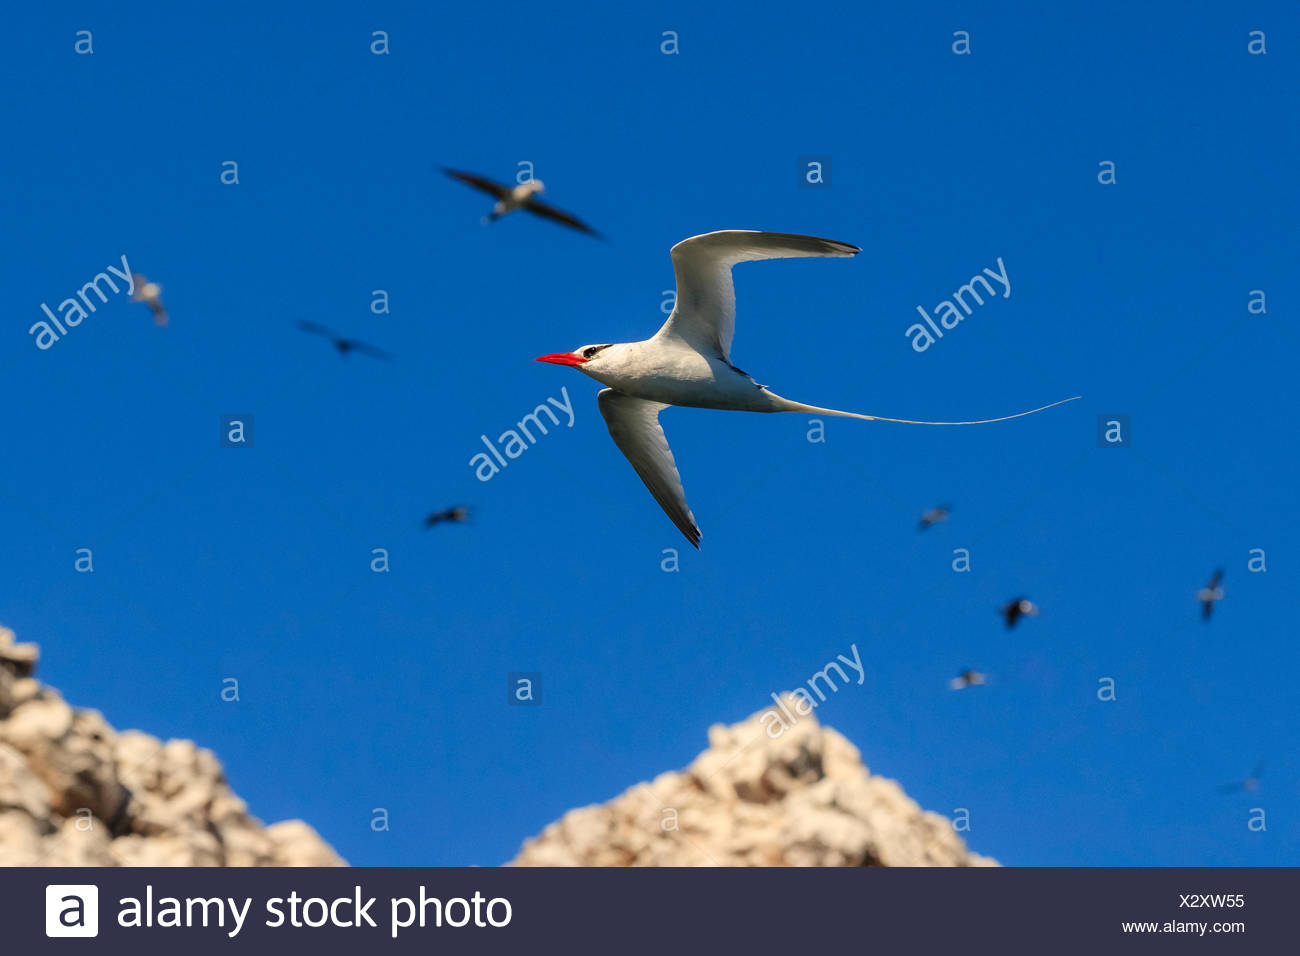 Red-billed tropic bird, Phaethon aethereus, in flight at San Pedro Martir Island. Stock Photo